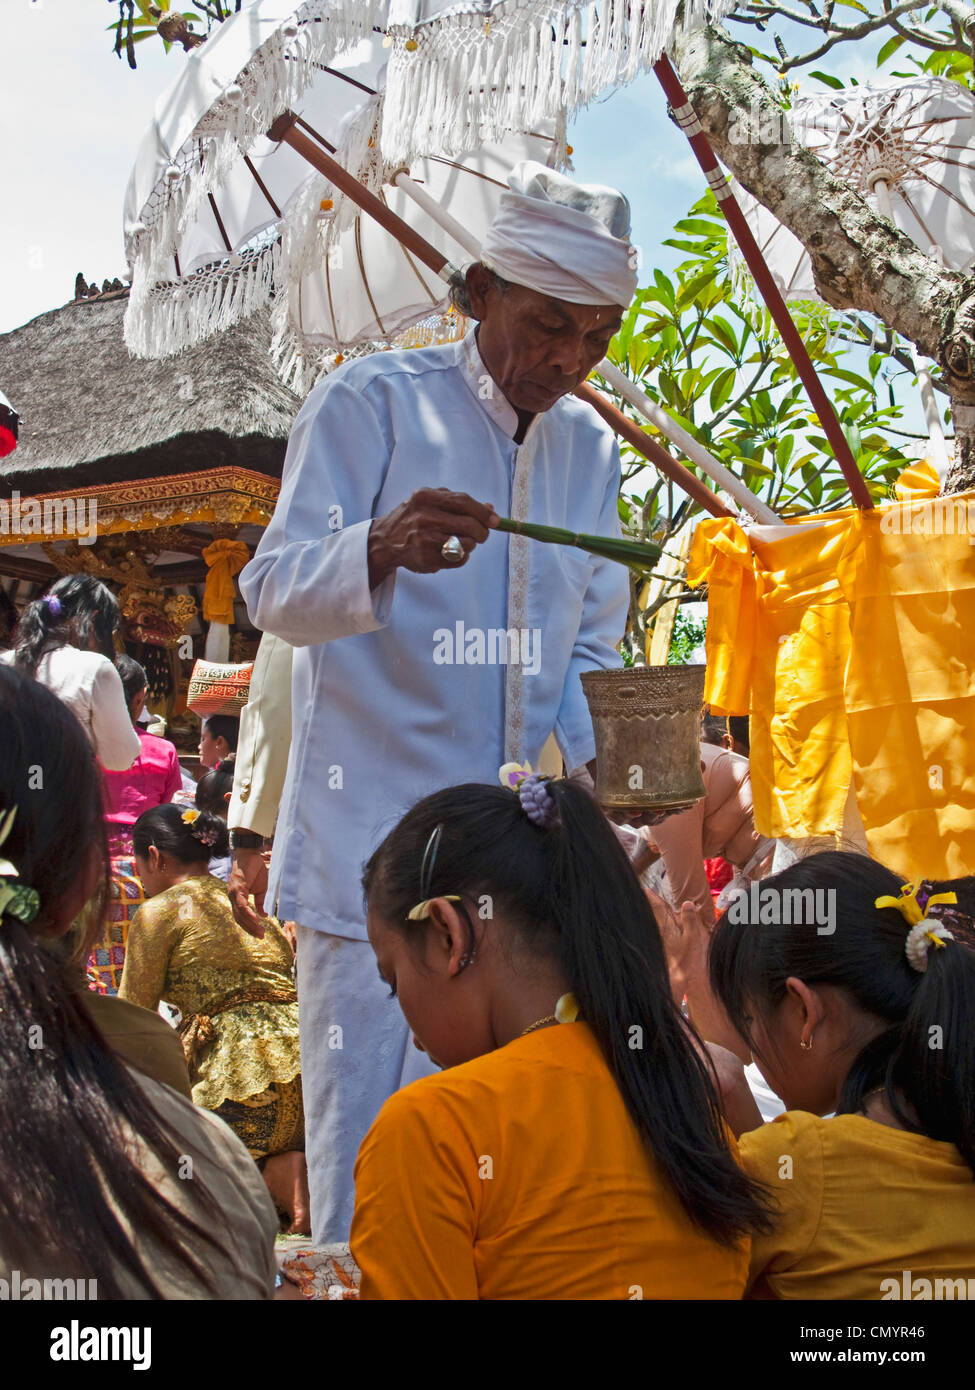 Hindus in temple, priest, Koningan Ceremoy, Bali Indonesia - Stock Image